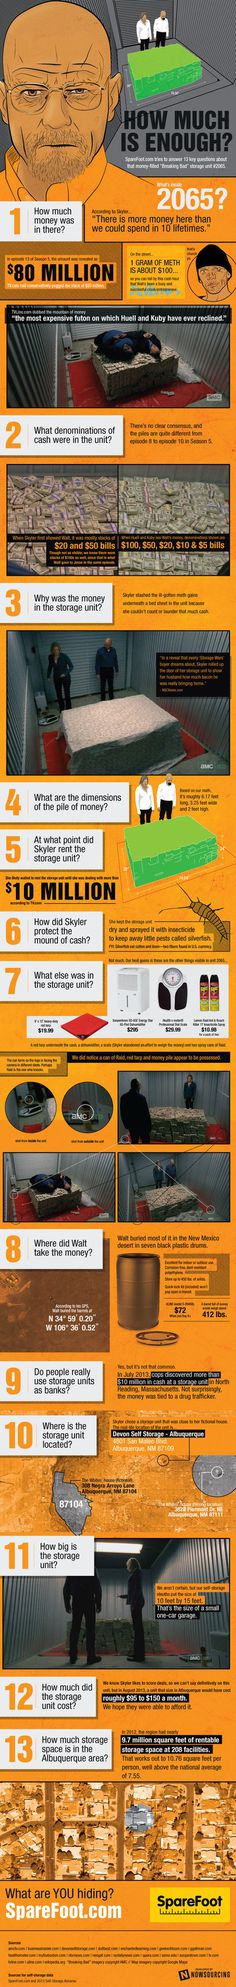 'Breaking Bad' Storage Unit: Answers to 13 Nagging Questions #breaking #storage #nowsourcing #units #bad